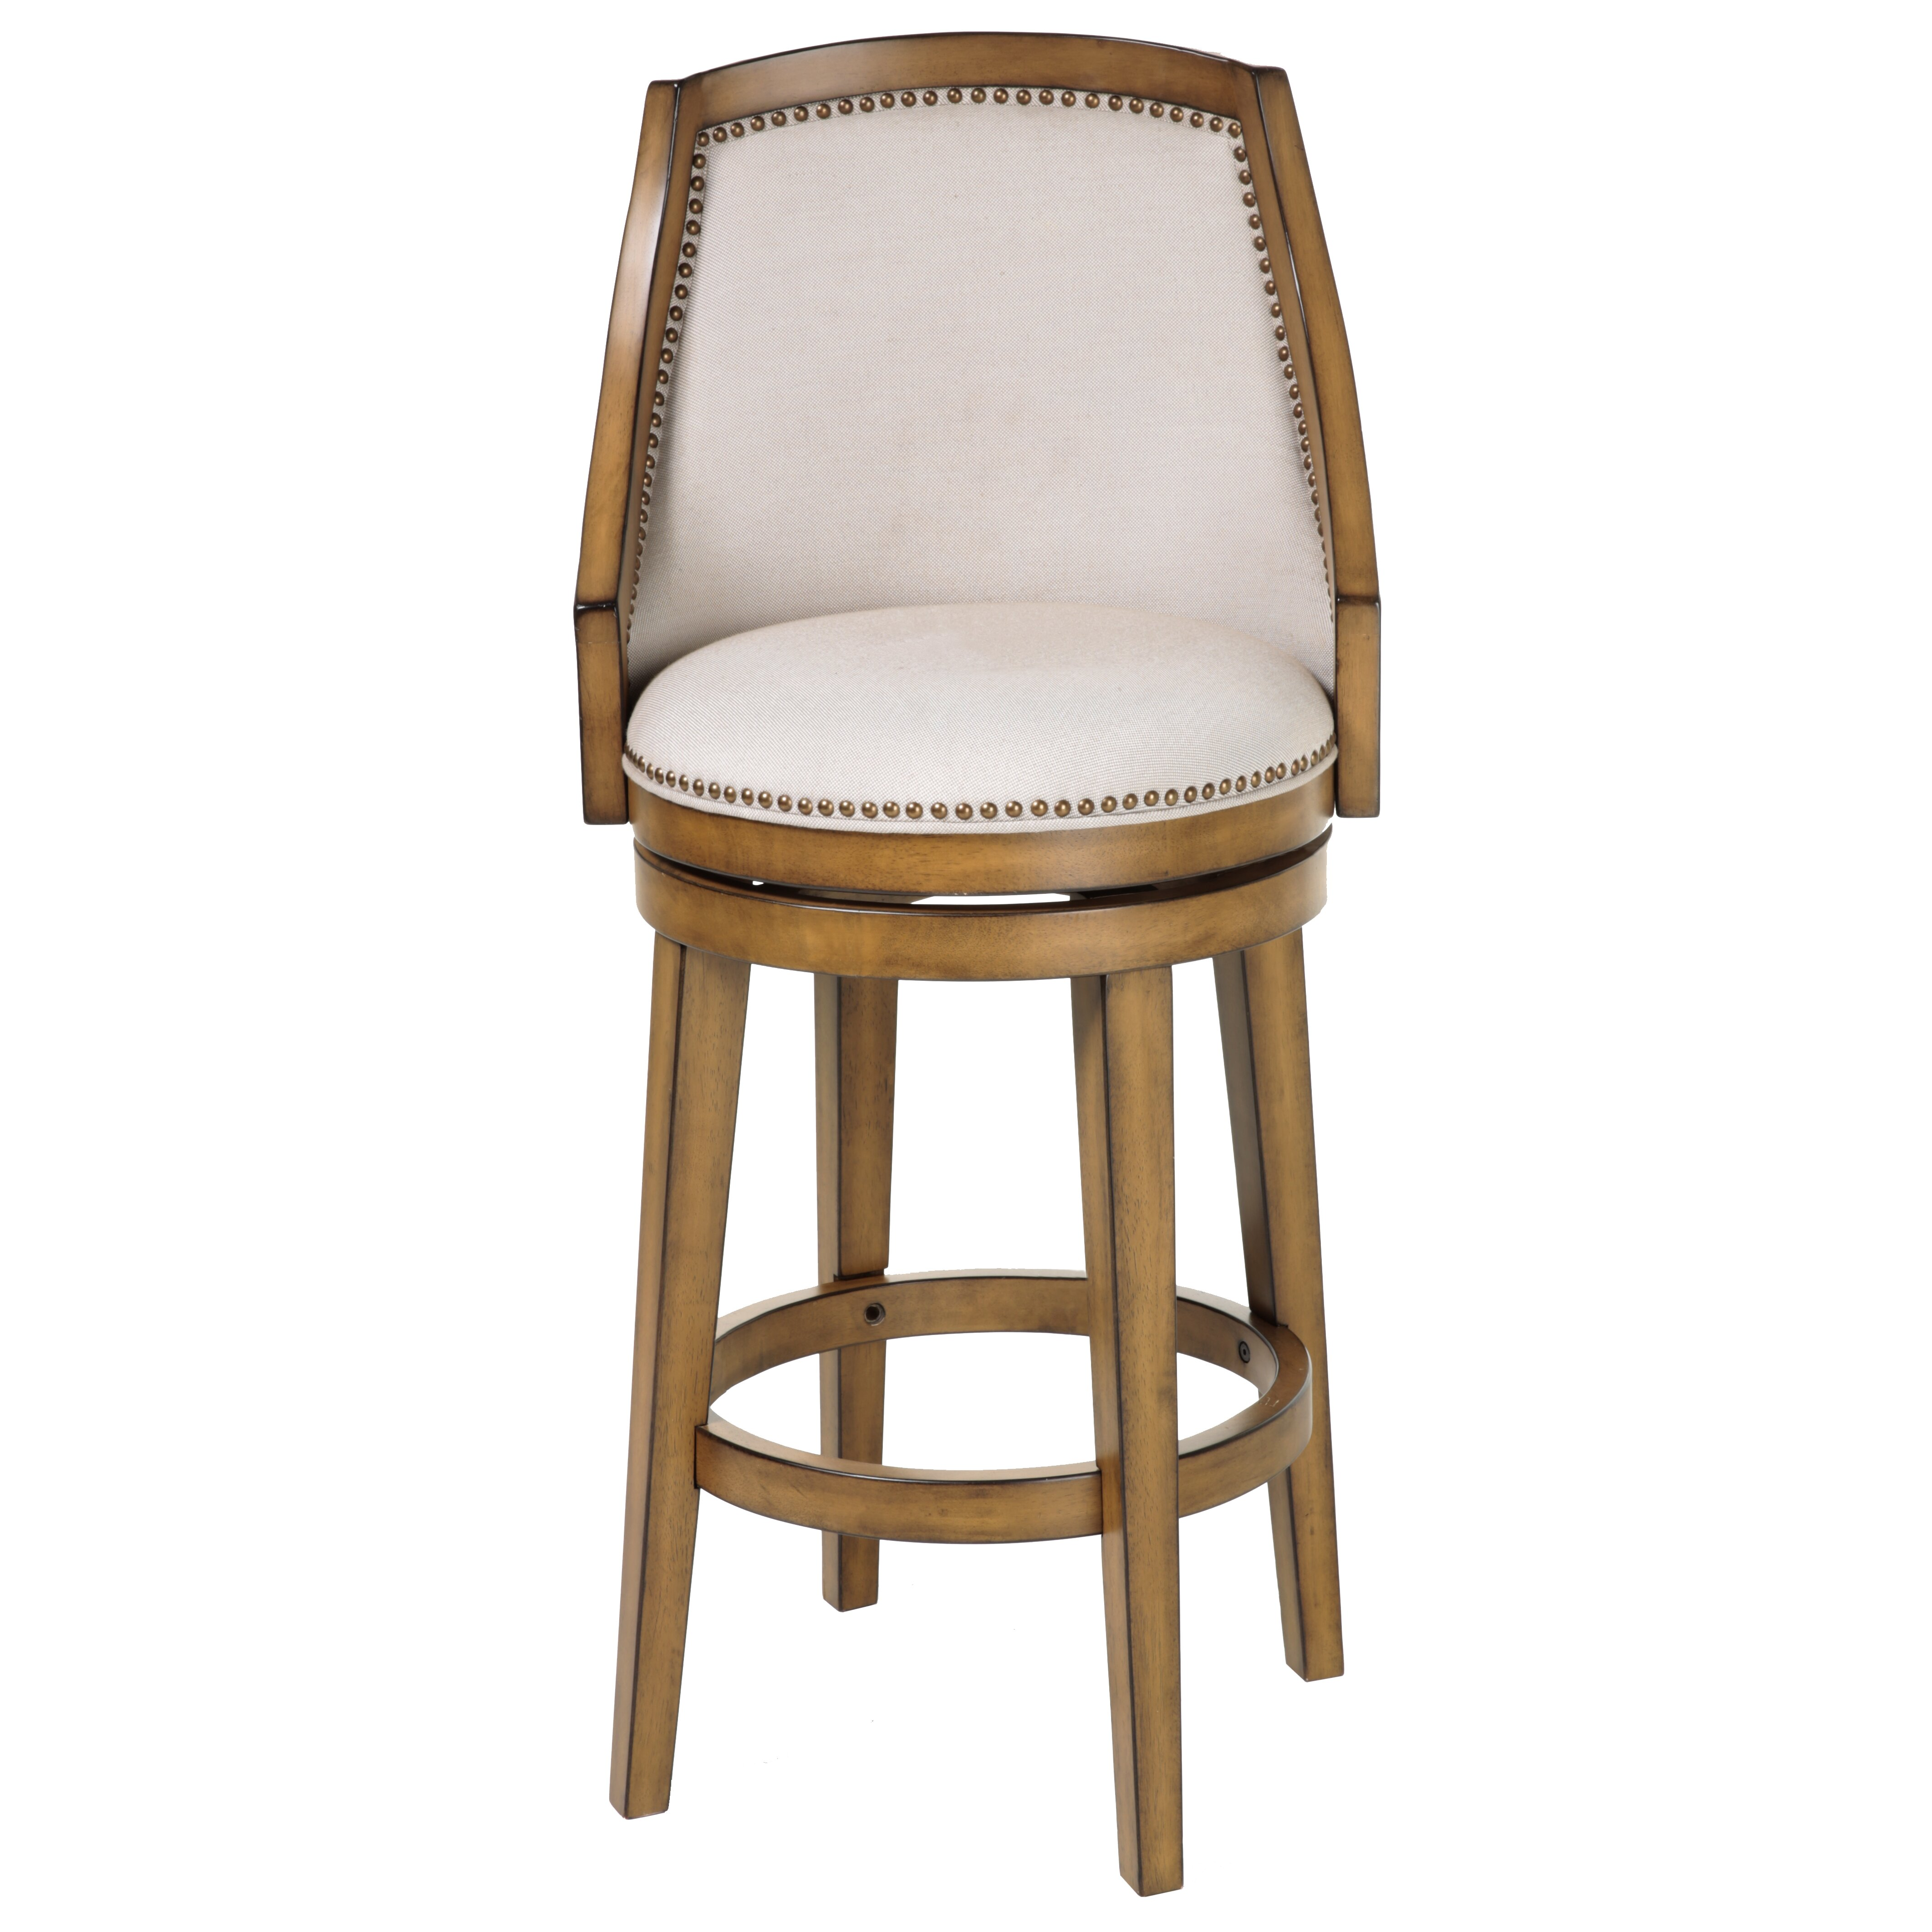 Darby Home Co Currahee 26quot Swivel Bar Stool Wayfair : Darby Home Co25C225AE Currahee 26 Swivel Bar Stool from www.wayfair.com size 4243 x 4243 jpeg 1343kB